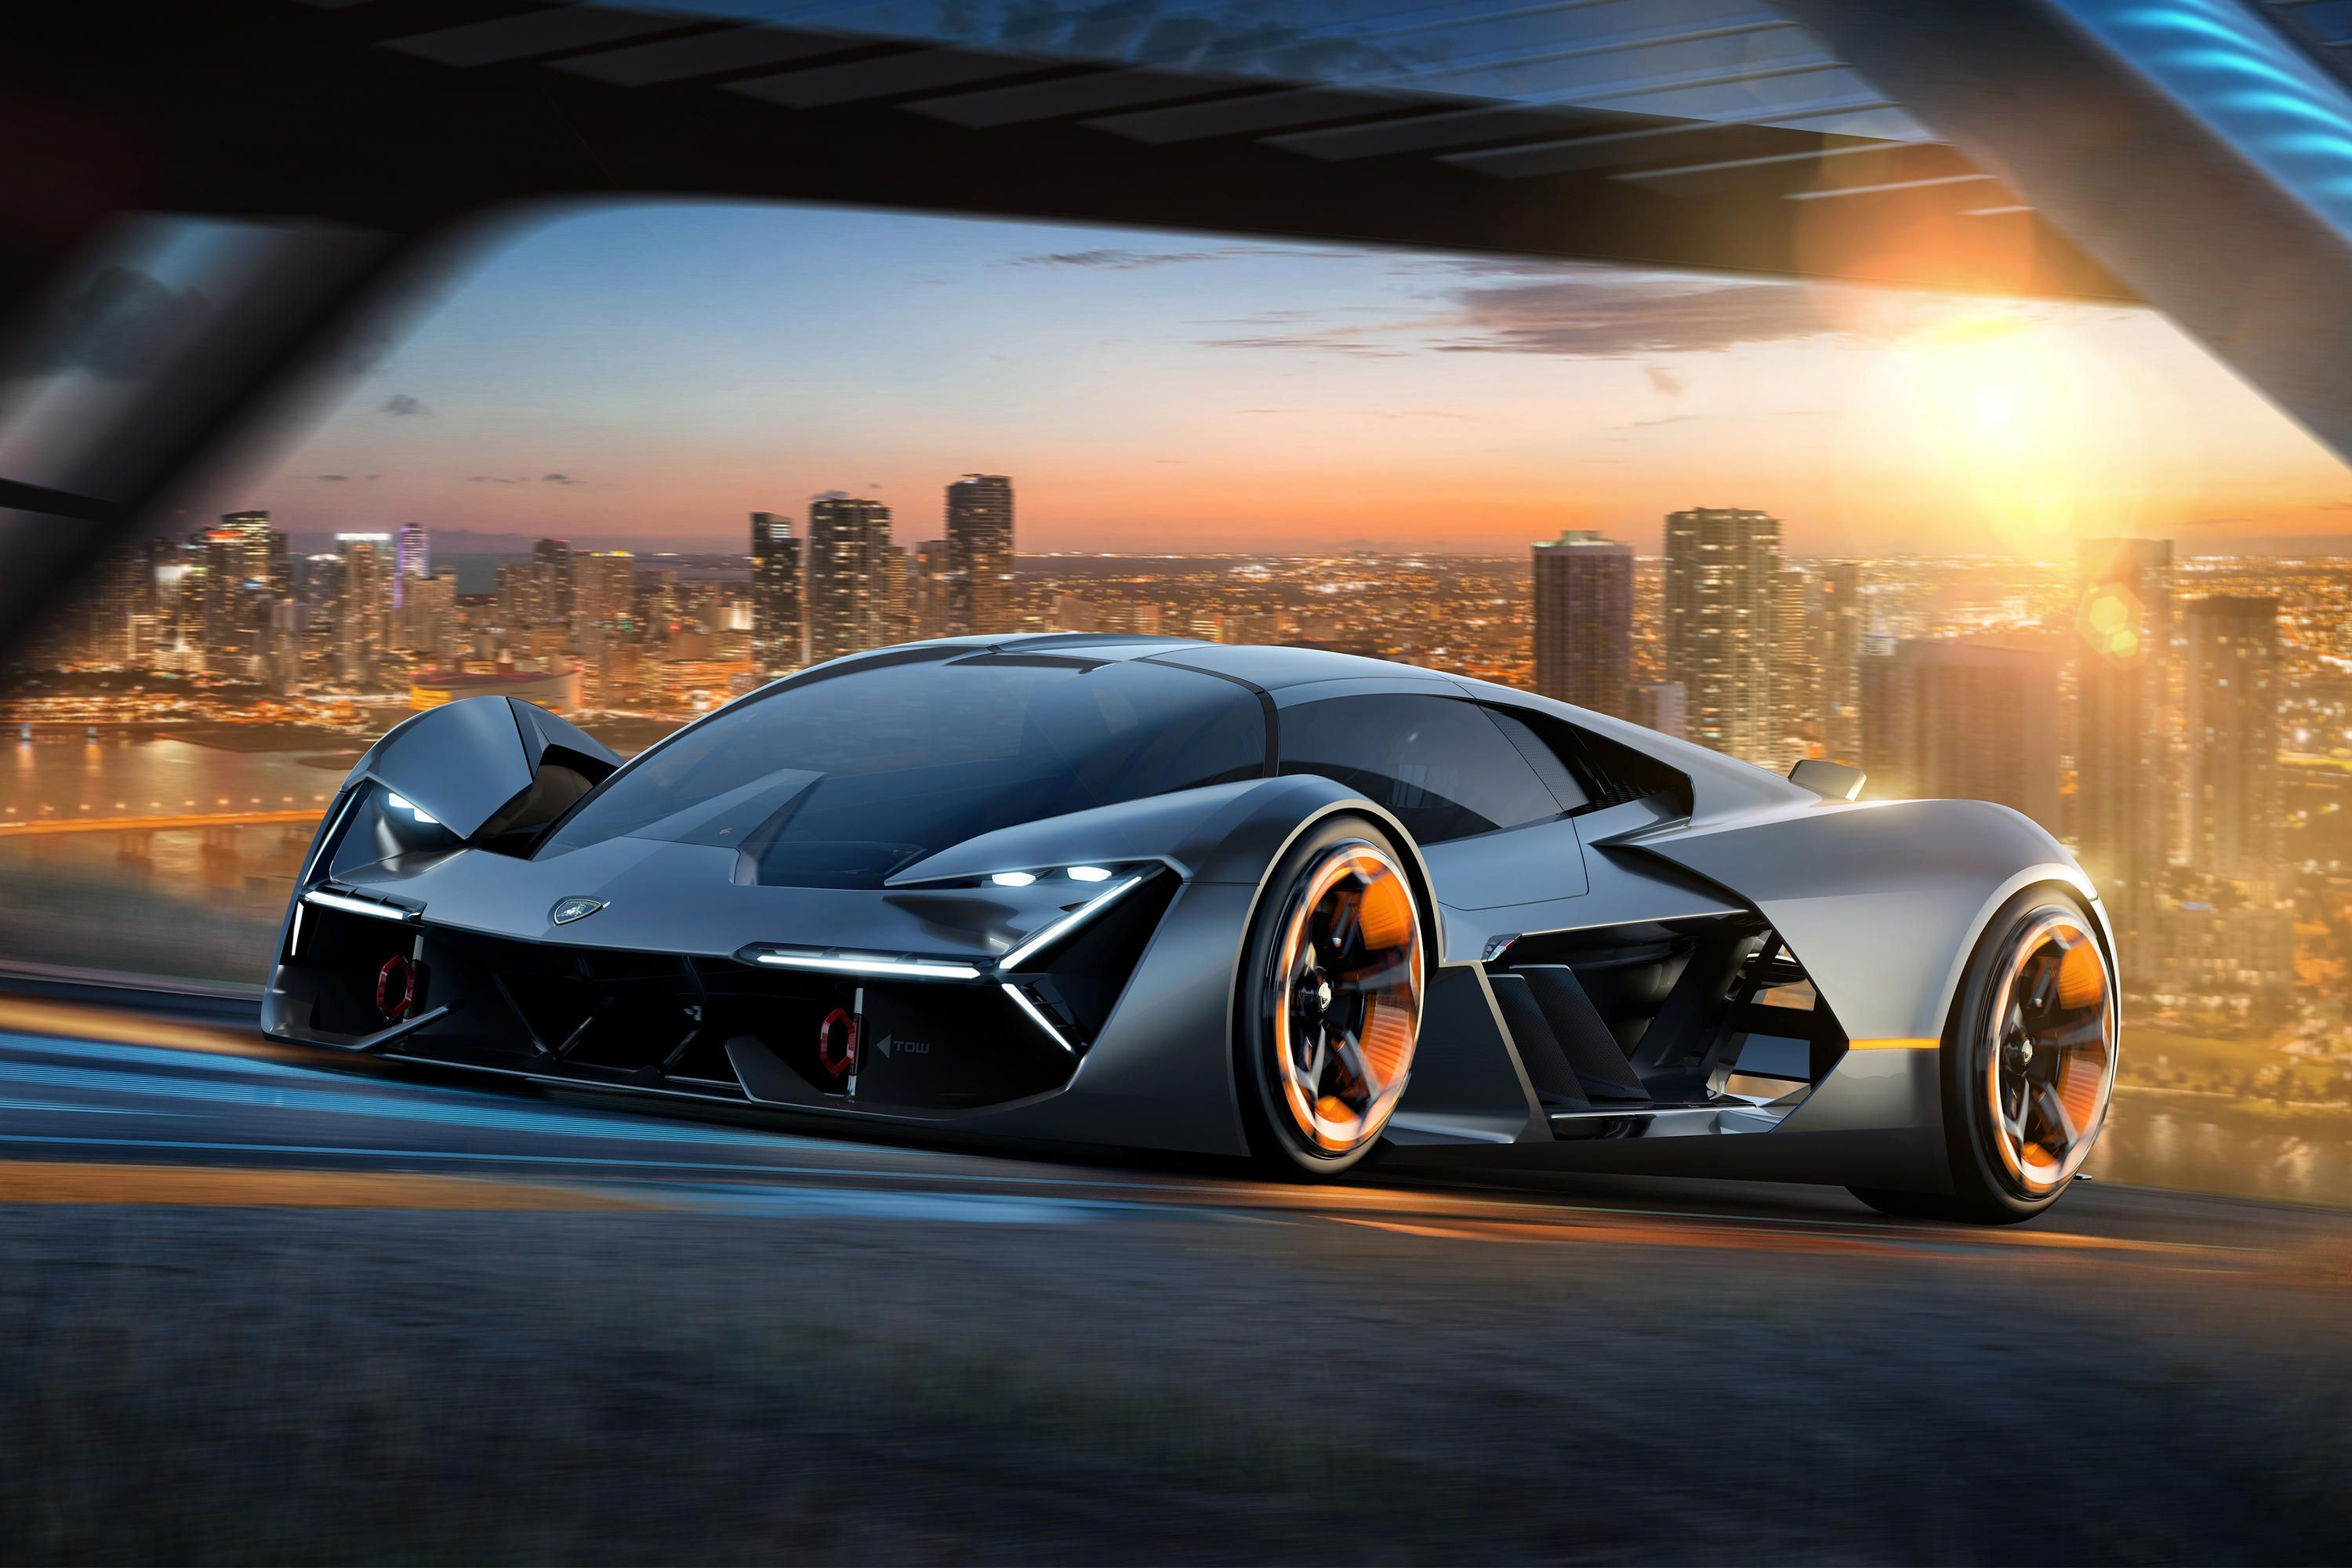 Download Wallpaper Mac Lamborghini - lamborghini-terzo-millennio-3000x2000-supercar-4k-16491  Image_477454.jpg